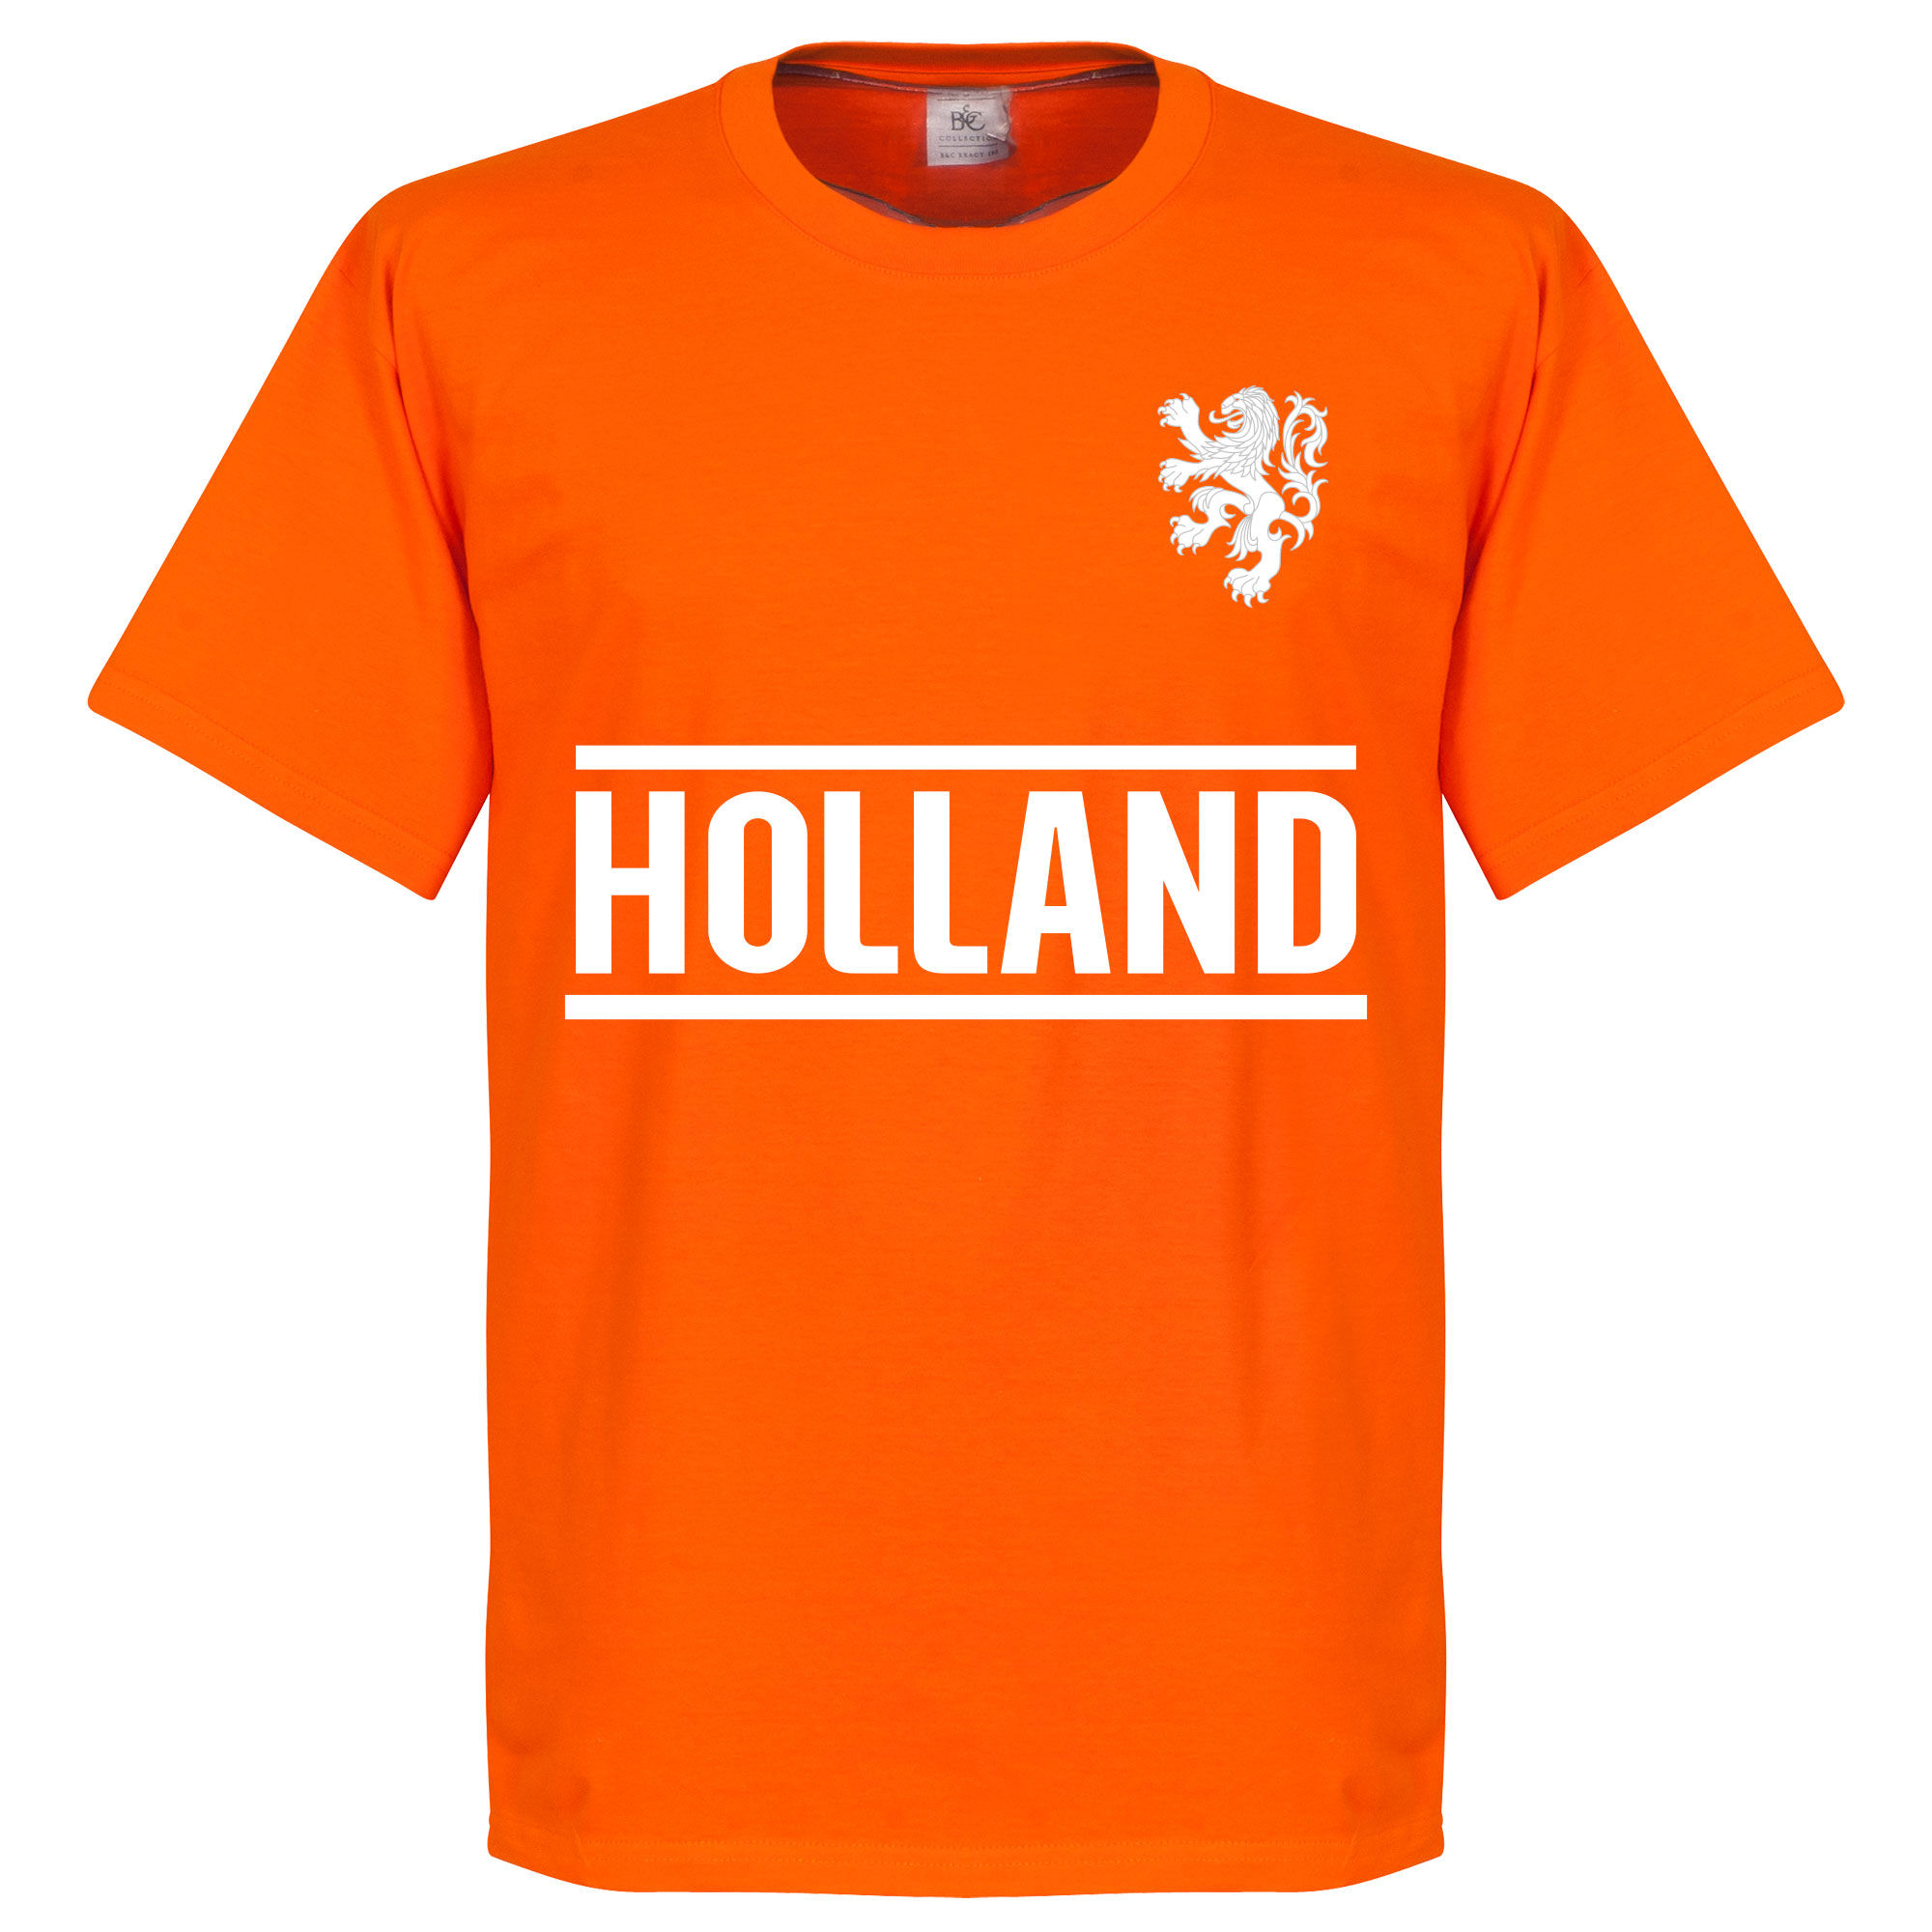 Holland Team Tee - Orange - S